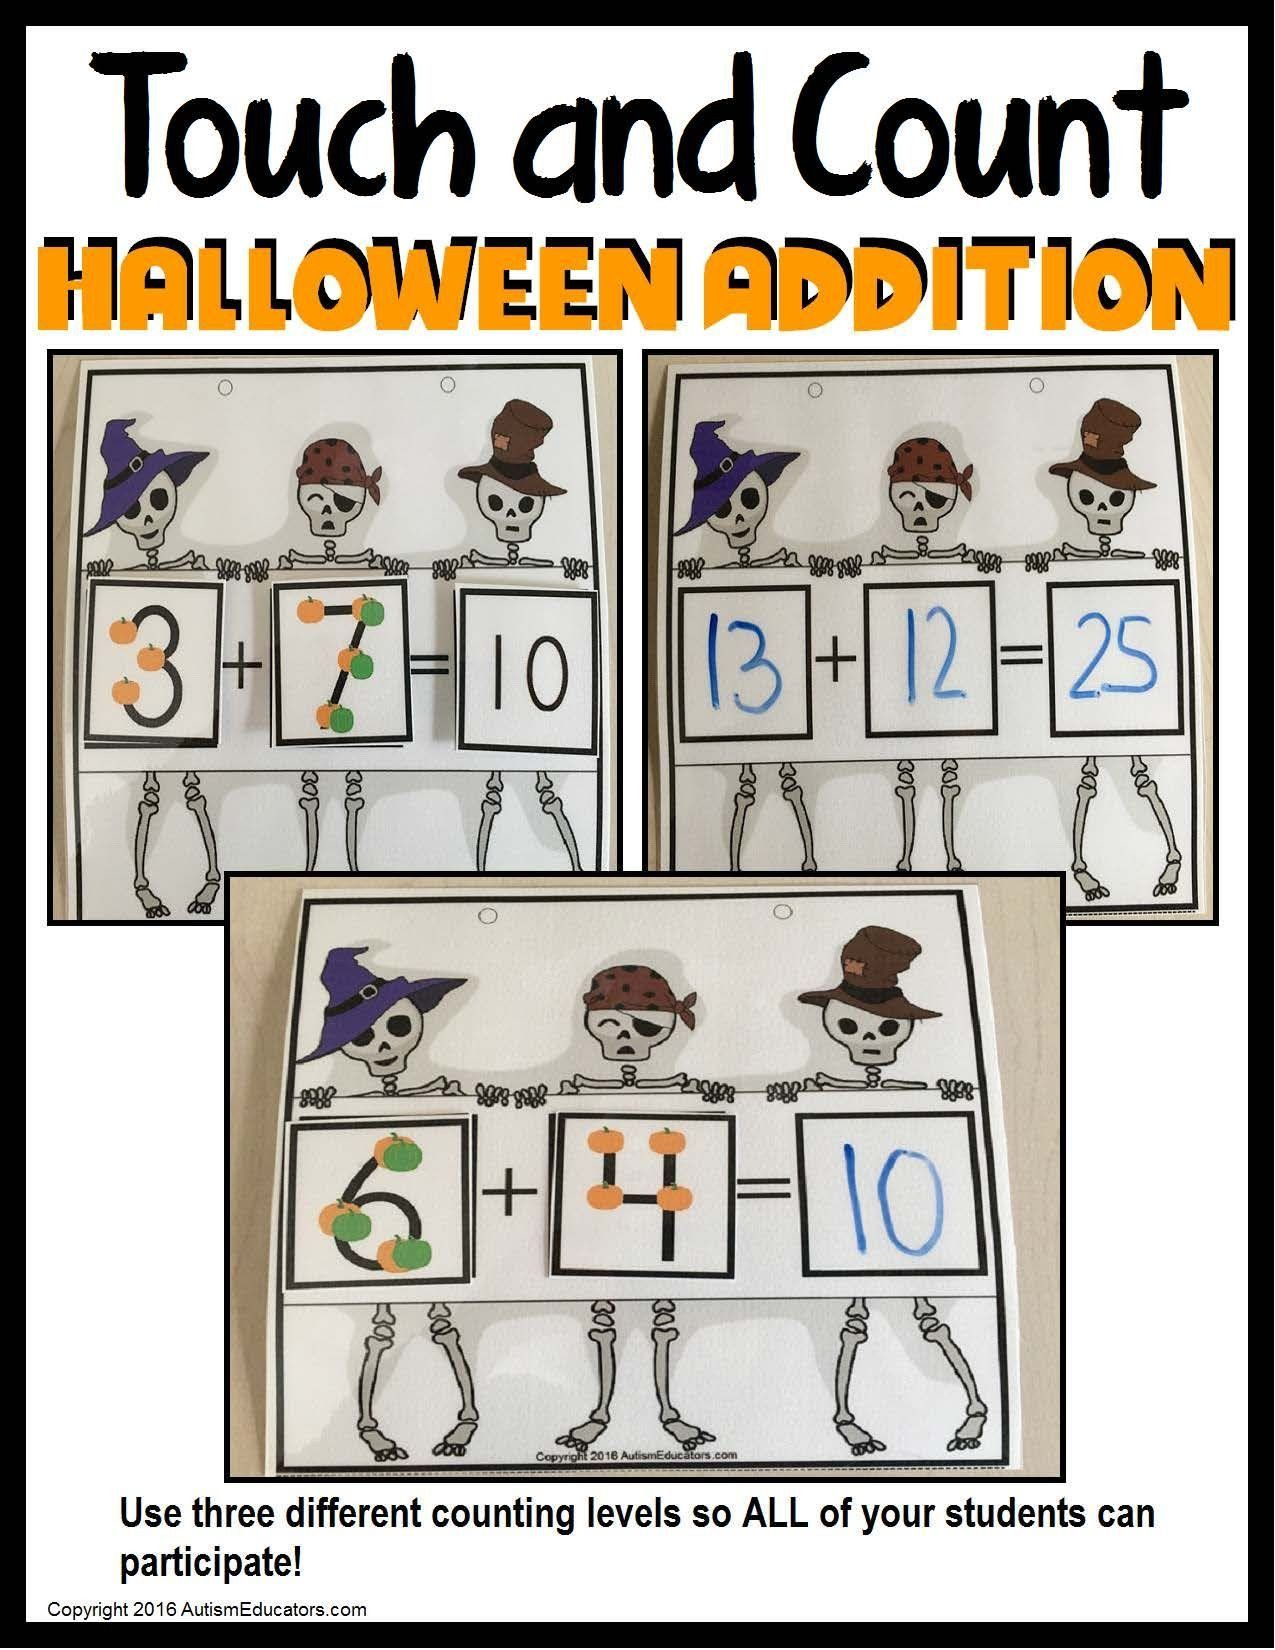 Touch Math Worksheet Generator Touch And Count Math Halloween Addition Using Touch Math Touch Math Touch Math Worksheets Free Printable Math Worksheets